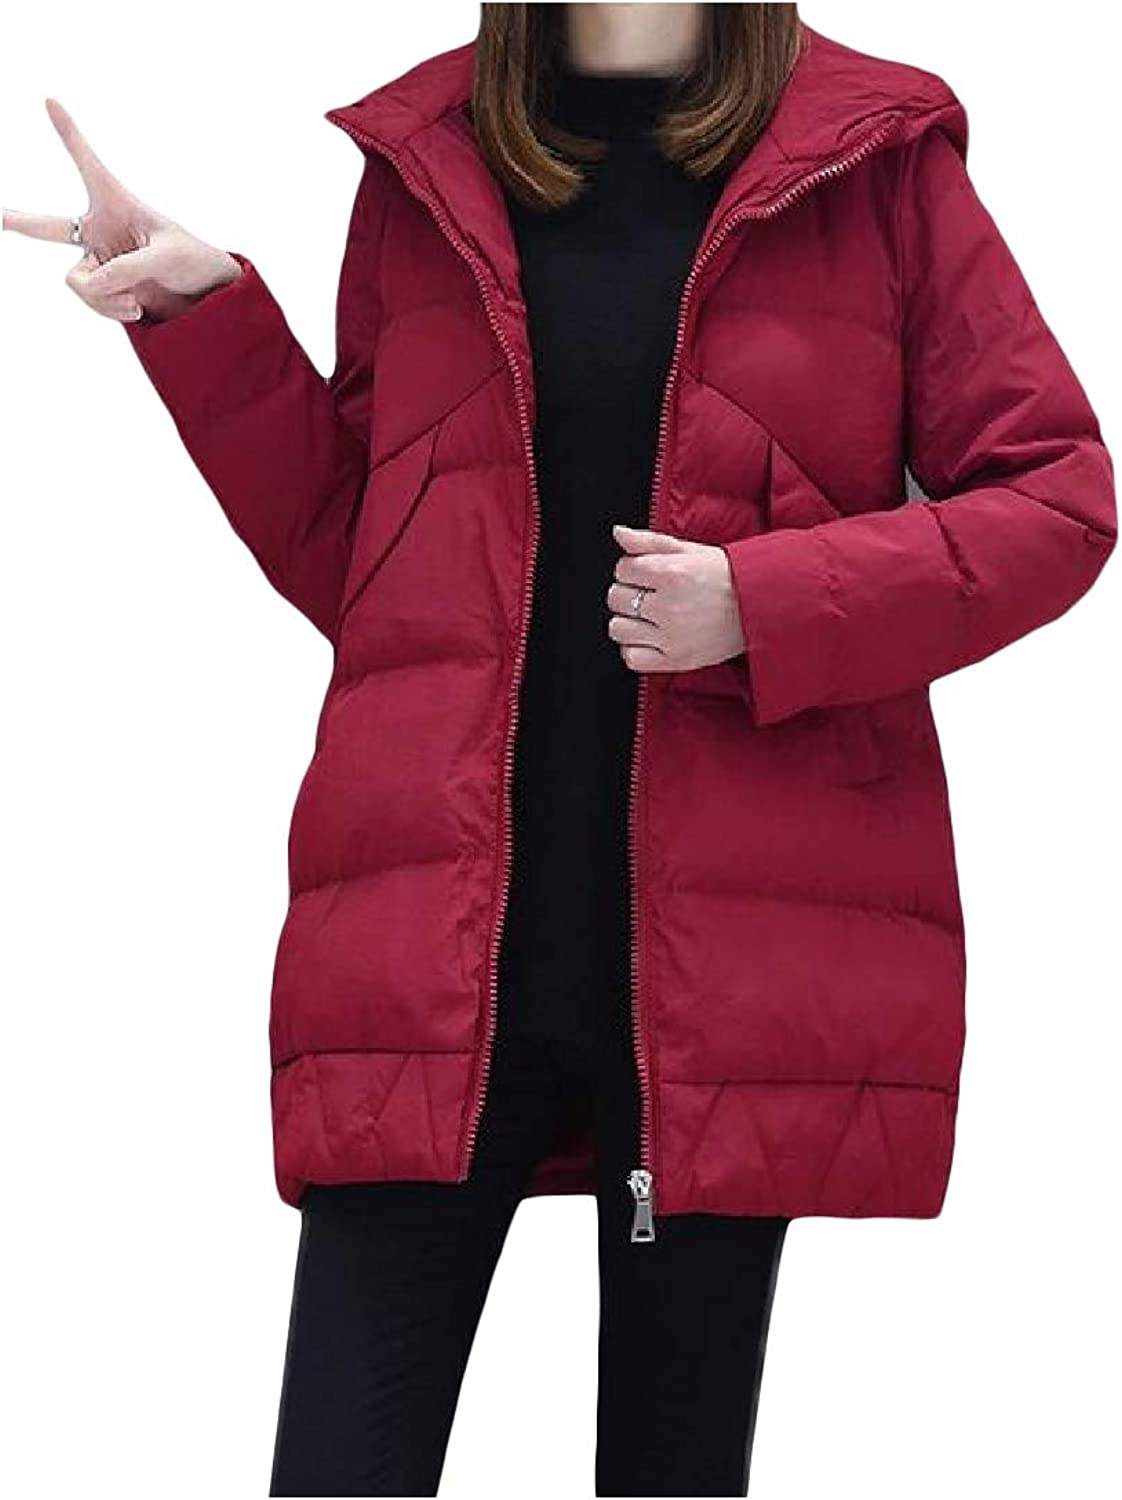 Cobama Women's MidLong Autumn Winter Quilted FullZip Hooded Thick Coa Outweart